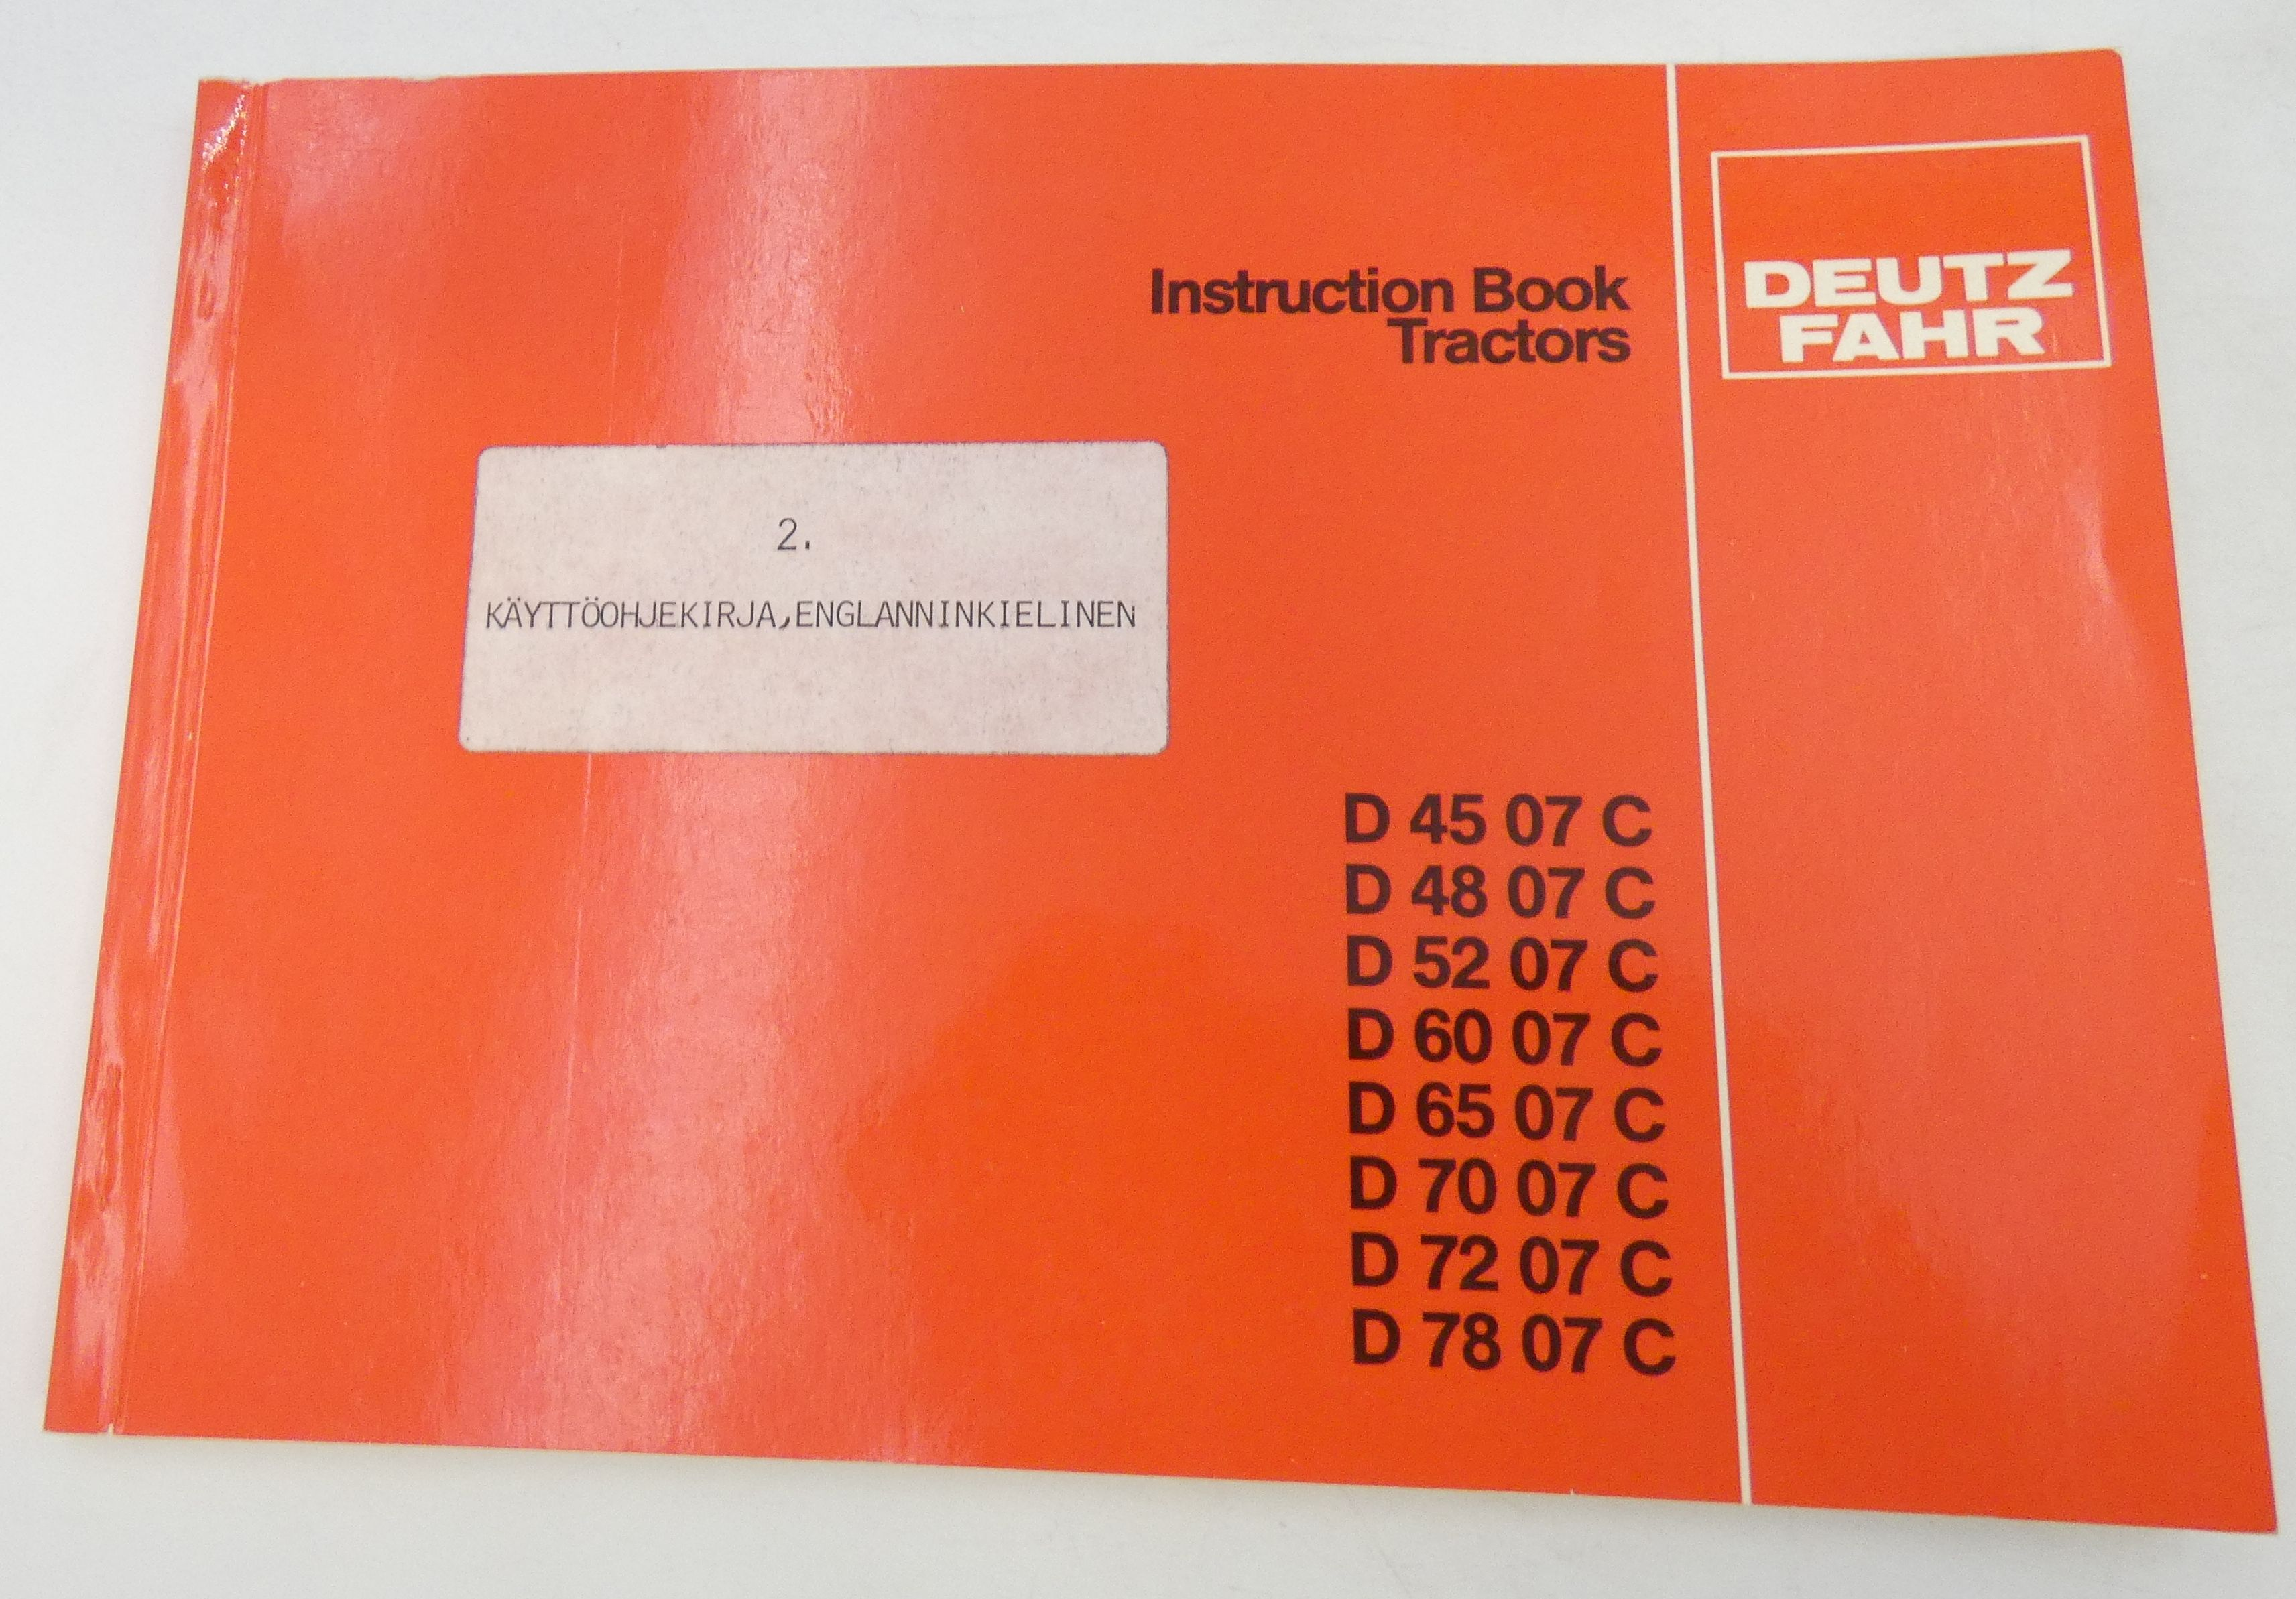 Deutz-Fahr D45-, D48-, D52-, D60-, D65-, D70-, D72-, D78 -07C tractors instructions book